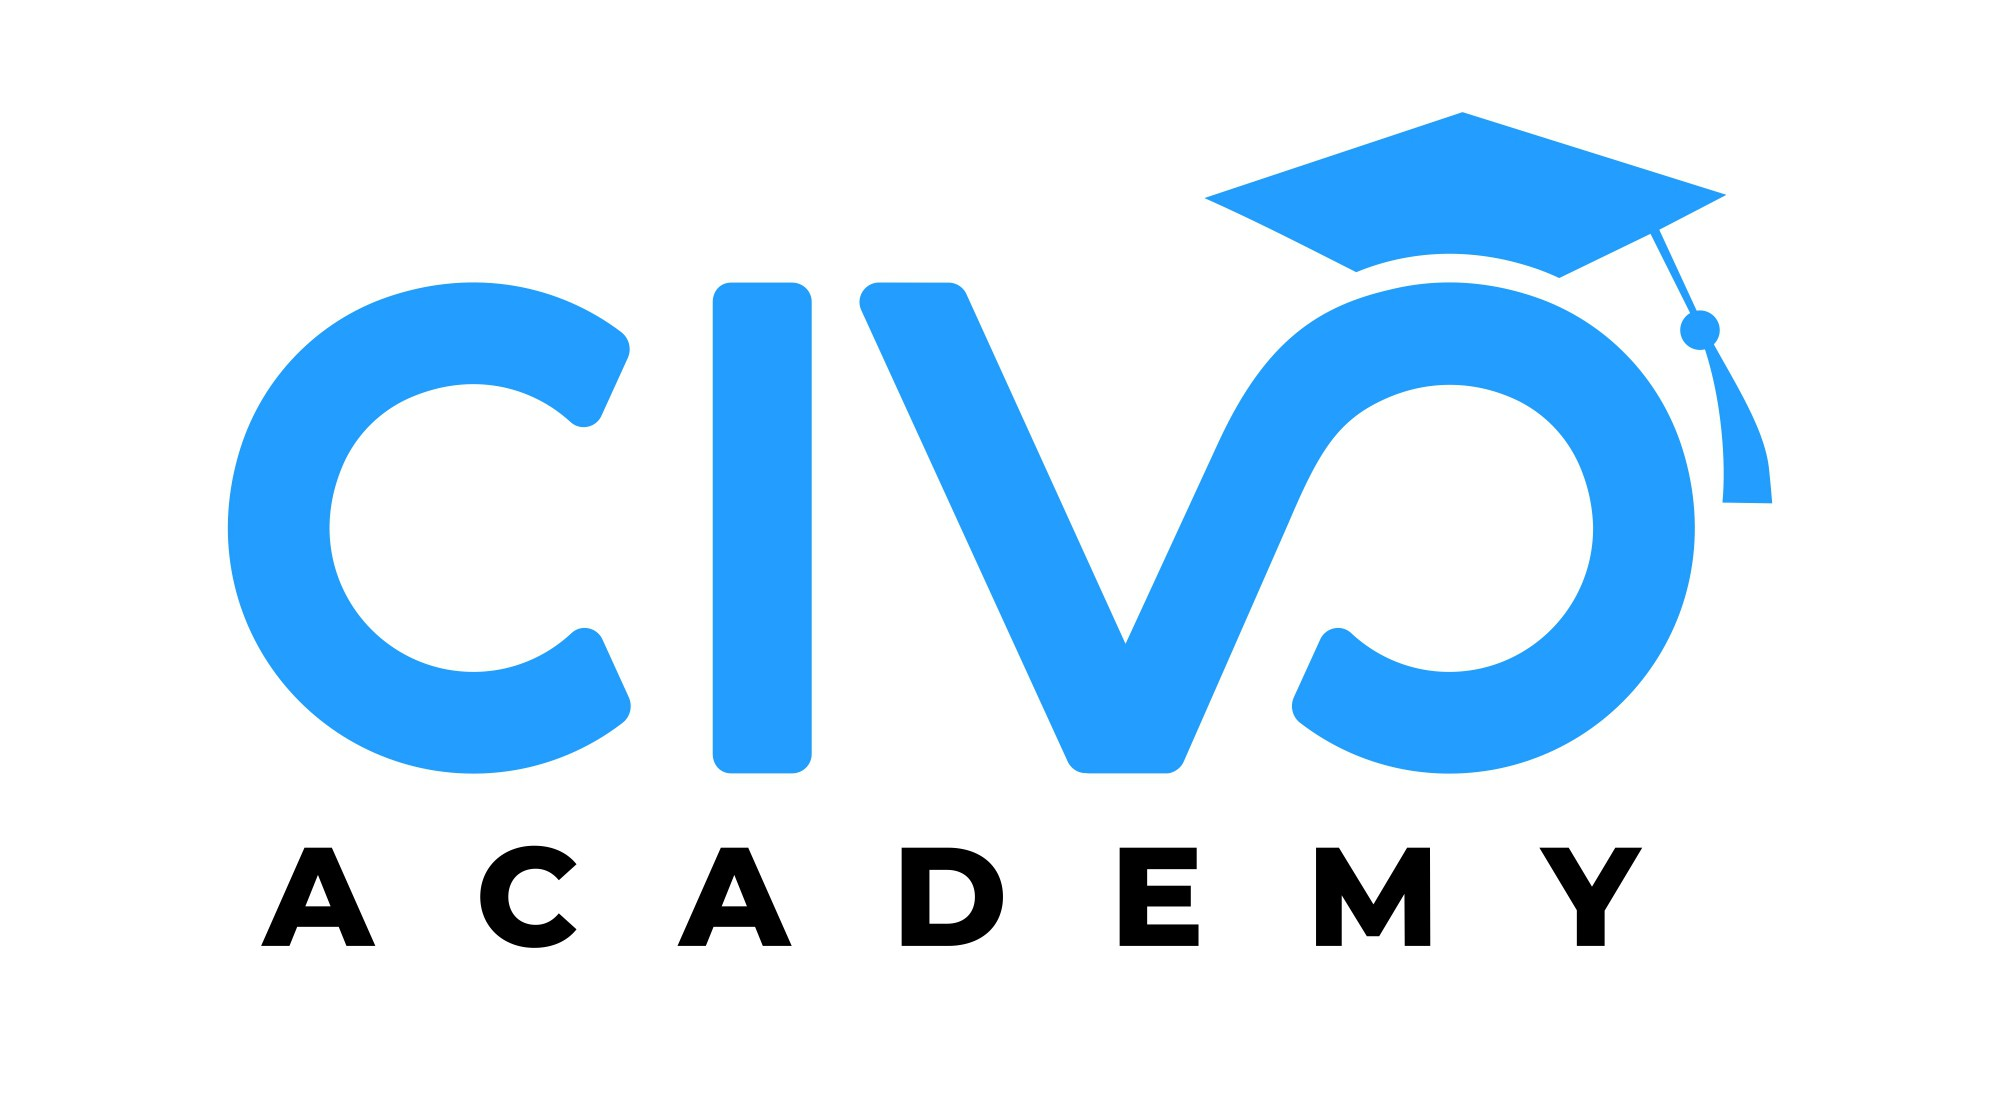 Design a cool logo for the new customer training academy of our tech brand